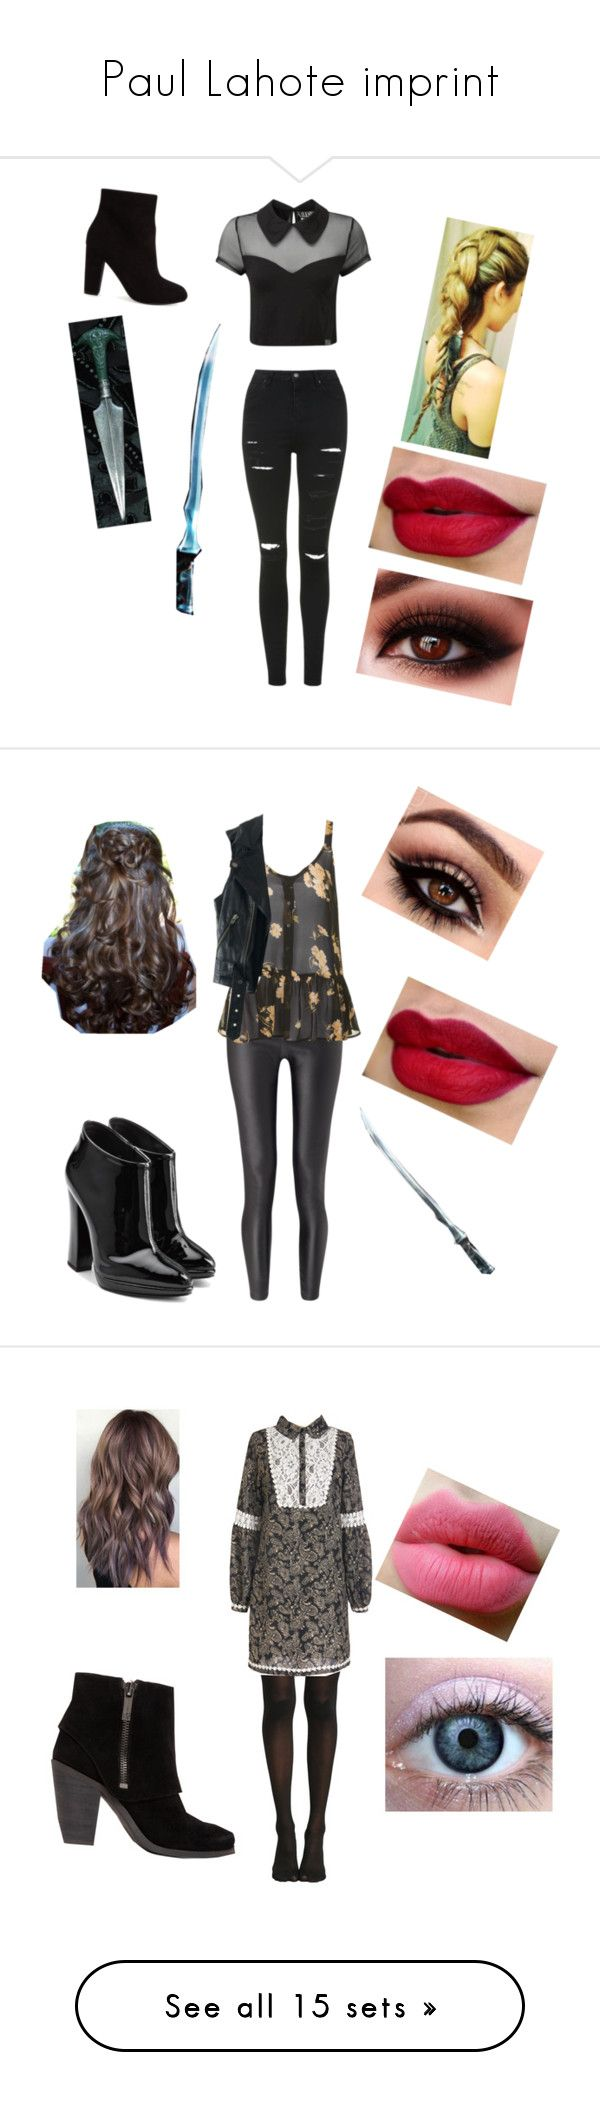 """""""Paul Lahote imprint"""" by anne-mc-geehan ❤ liked on Polyvore featuring Topshop, ASOS, Killstar, Miss Selfridge, Giuseppe Zanotti, Free People, Hot Topic, Jessica Simpson, IRO and Links of London"""